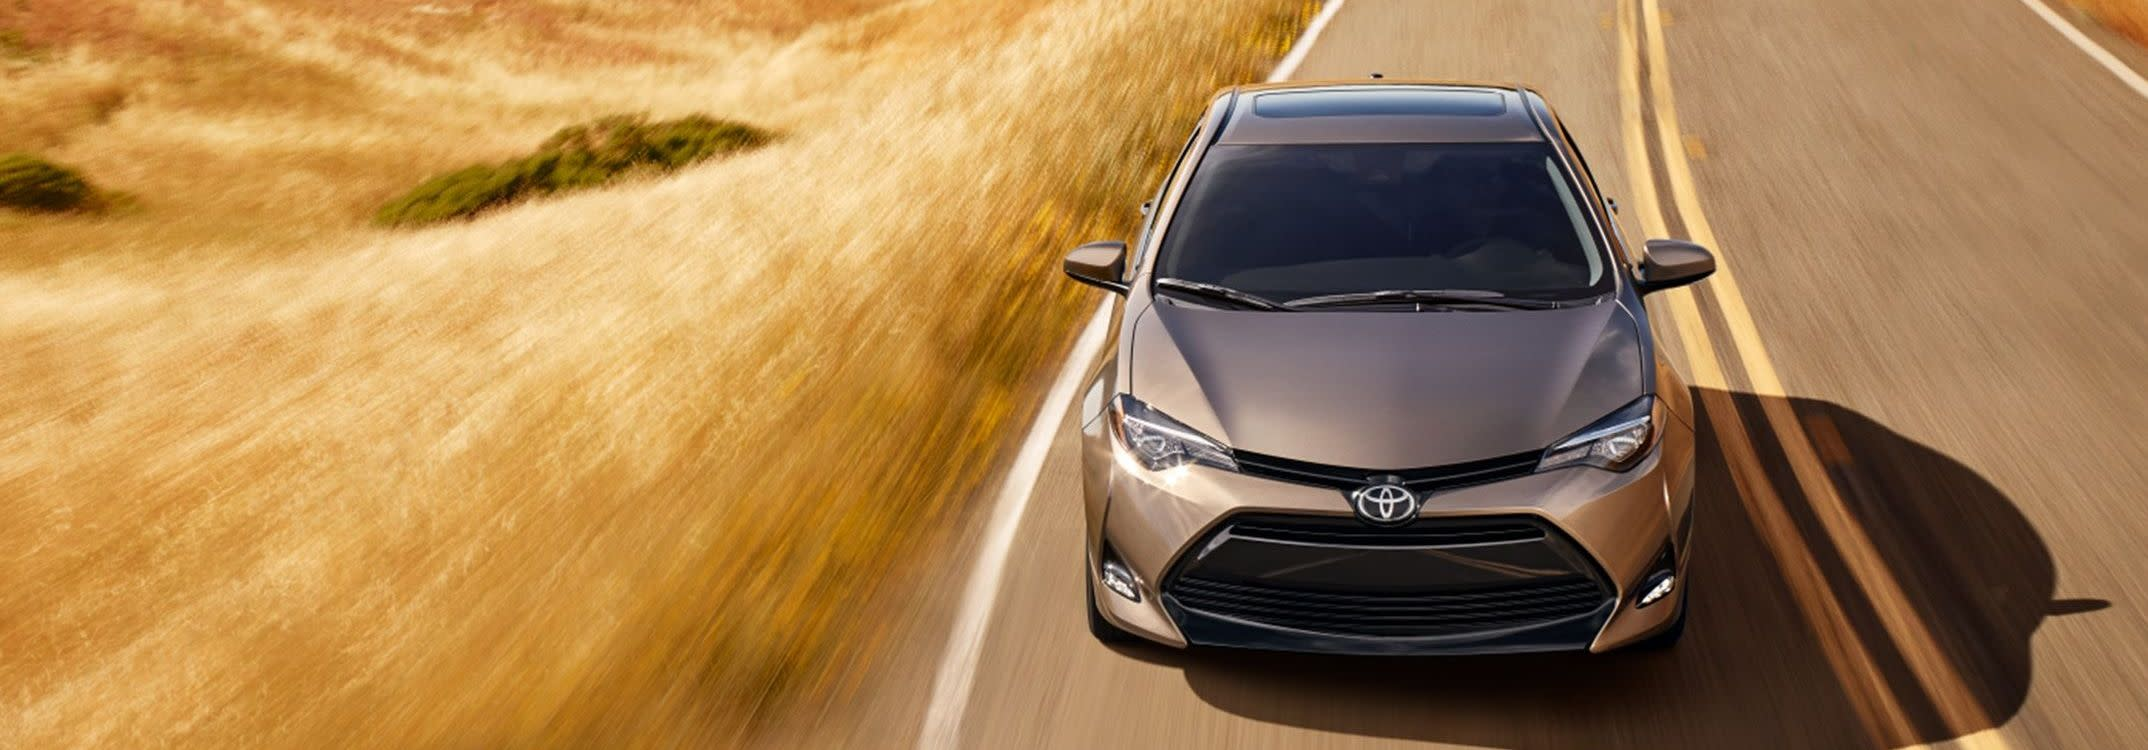 2019 Toyota Corolla For Sale Near Orland Park Il Planet Toyota